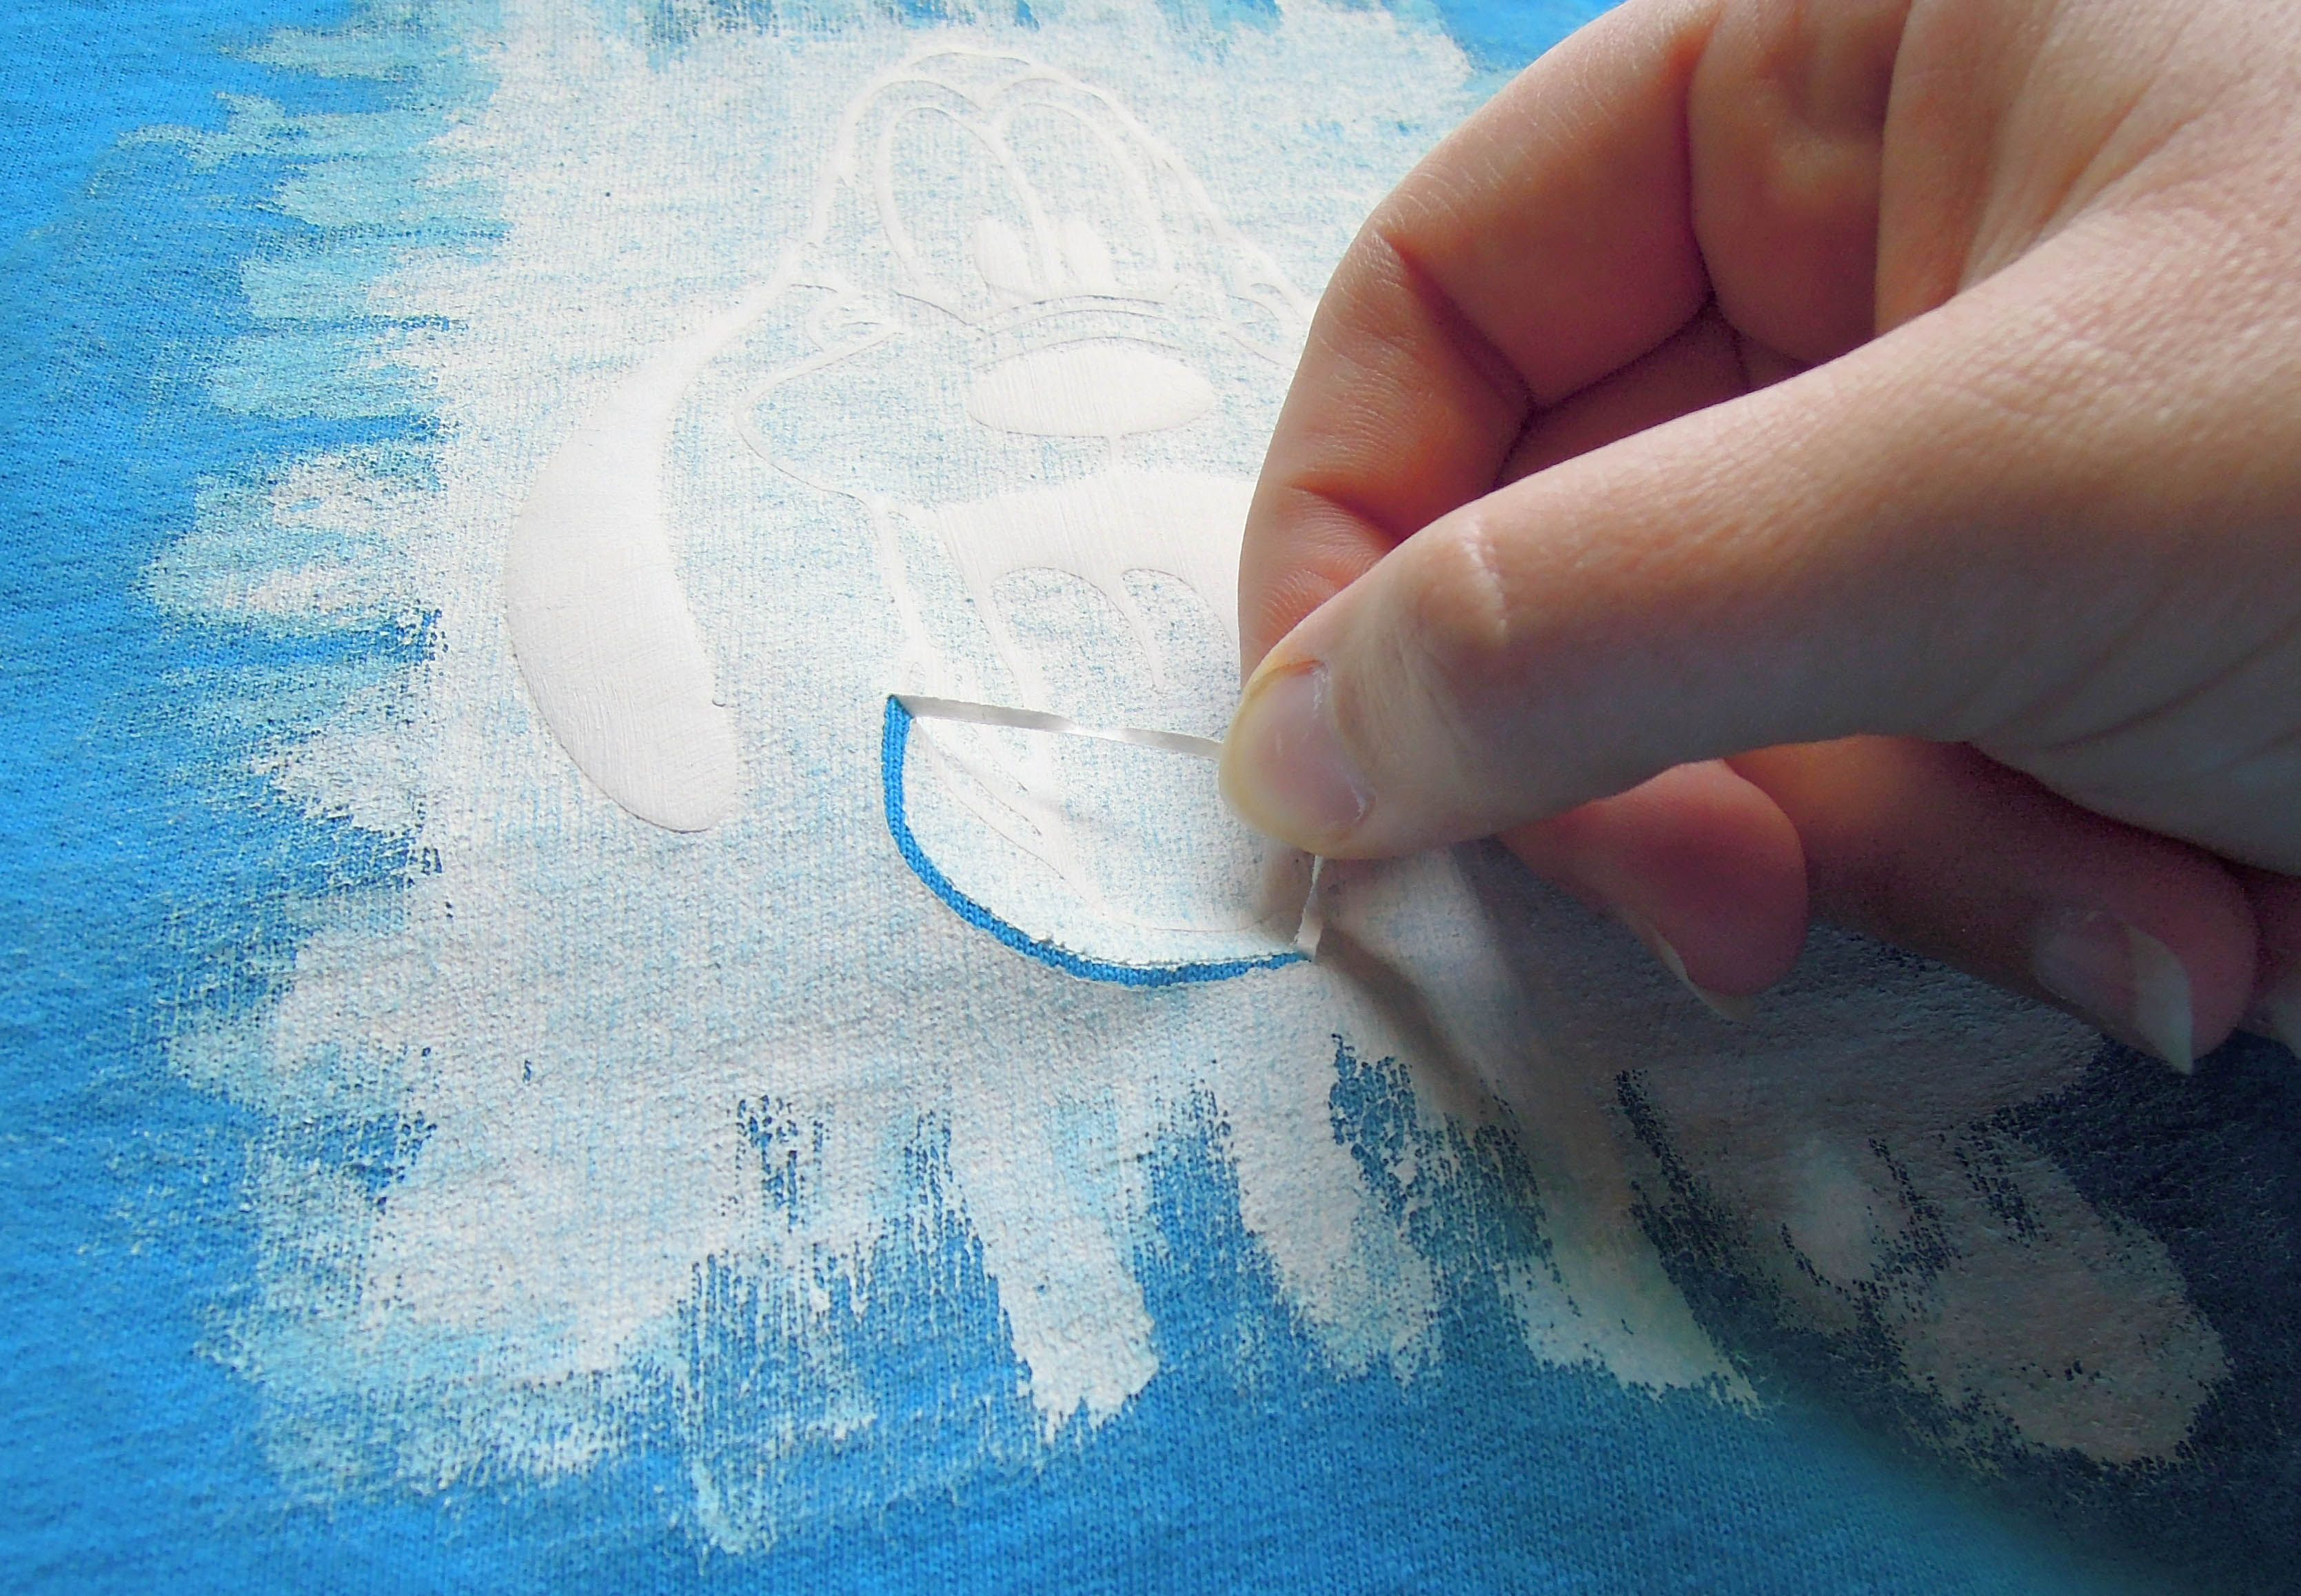 tutorial on stenciling Disney characters using  freezer paper, designs included